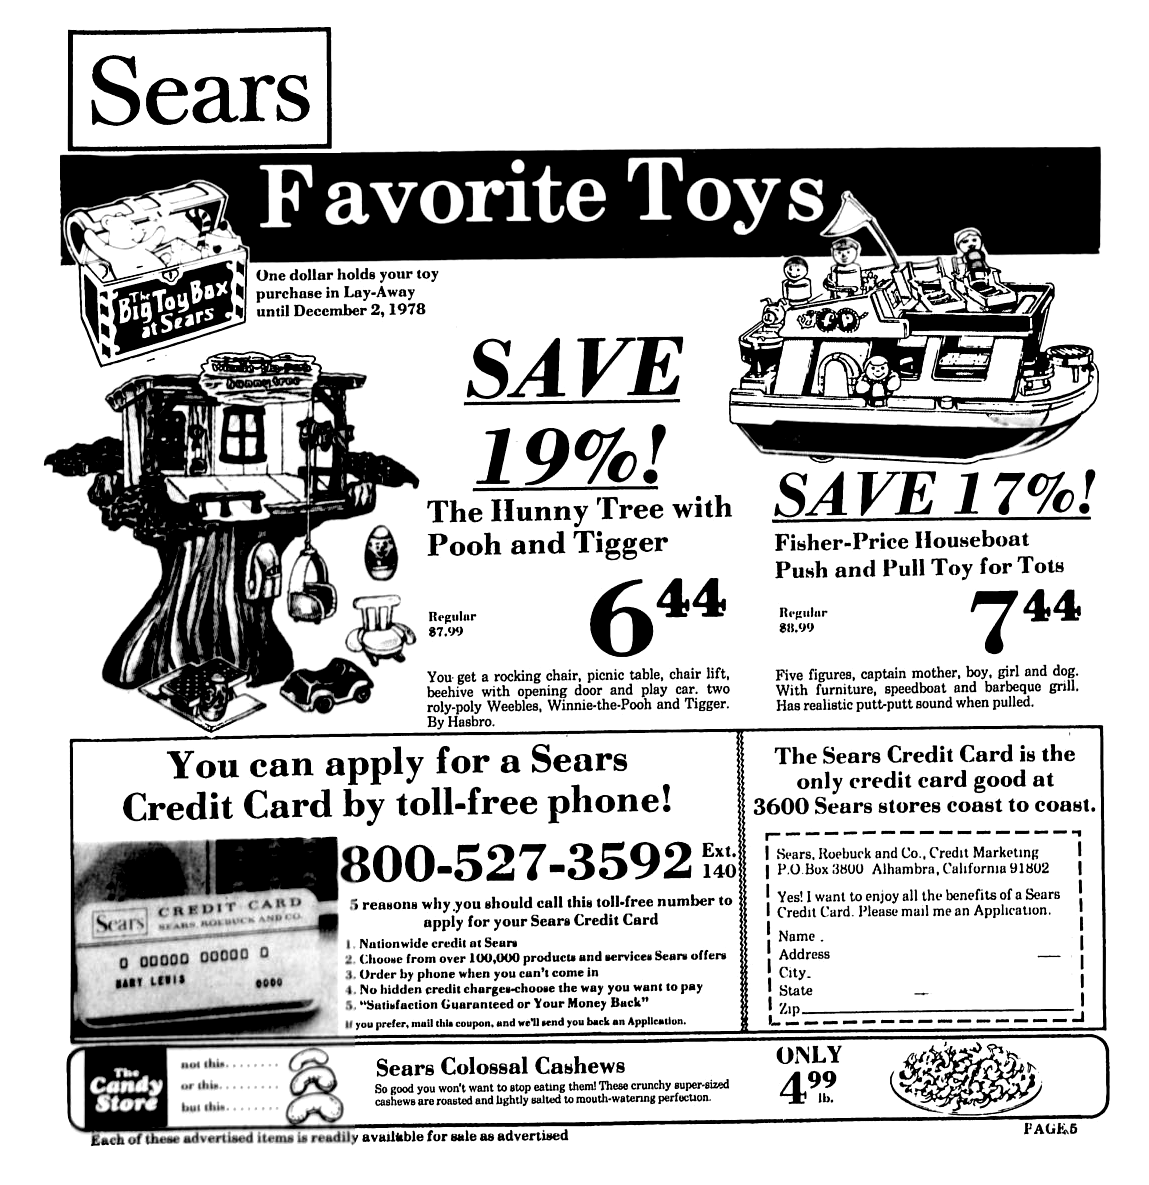 Sears Toys, Credit Cards & Cashews